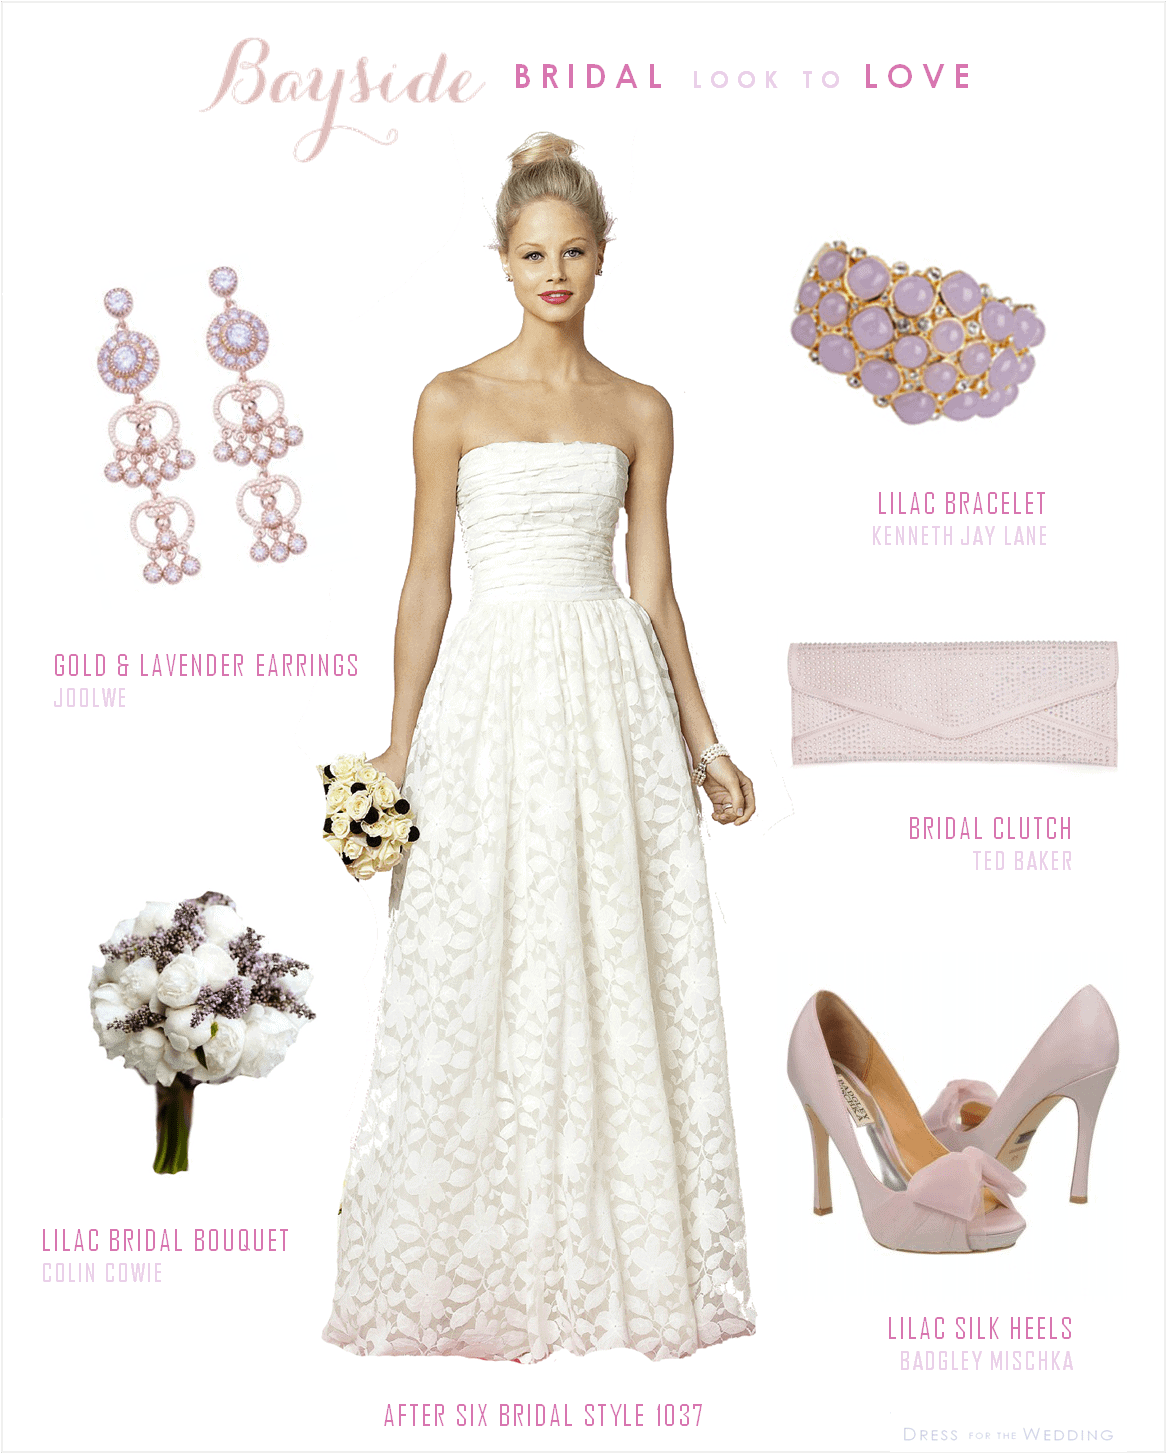 Lace Wedding Dress With Lavender Accessories